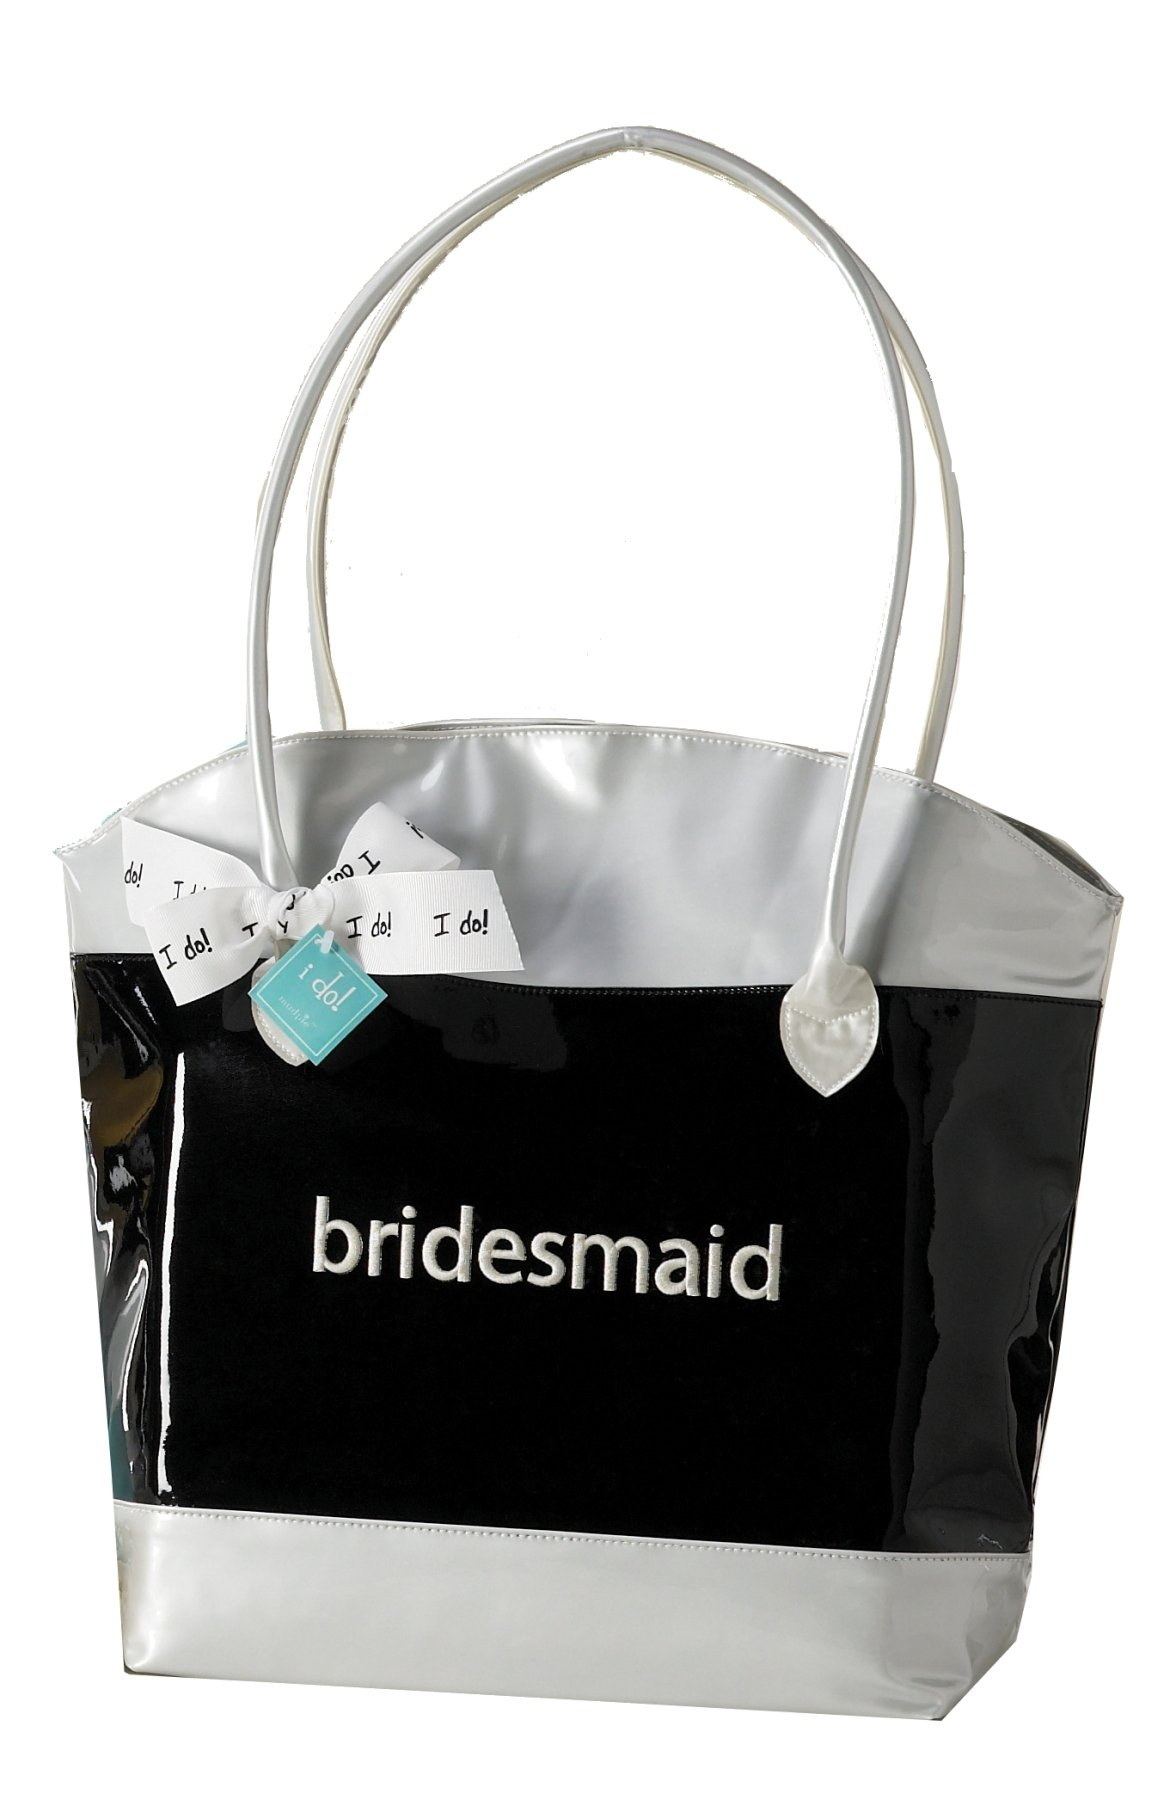 Mud Pie Wedding Something Blue Tote Bag, Bridesmaid, Black and White